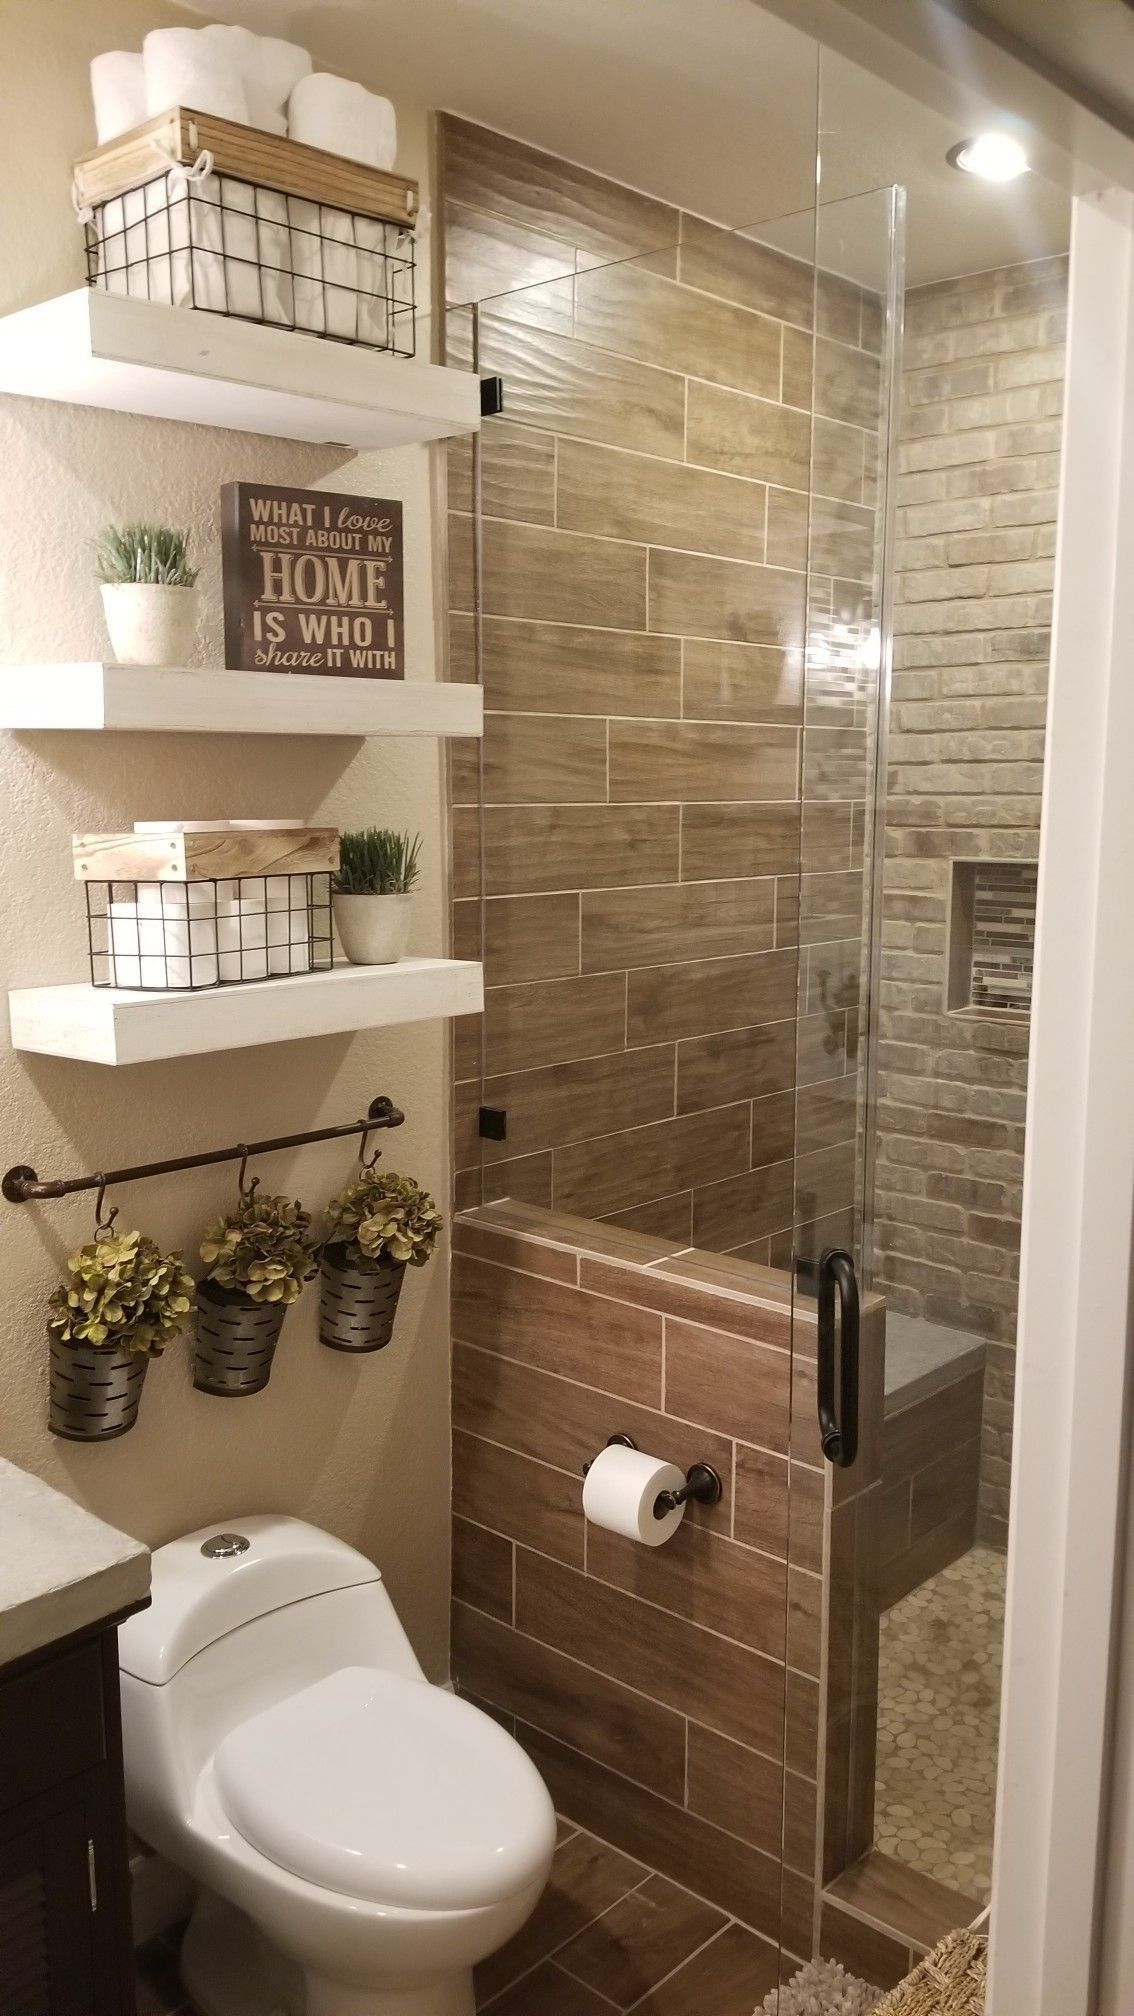 60 Guest Bathroom Makeover Ideas You Must Have Small Bathroom Remodel Small Bathroom Decor Small Bathroom